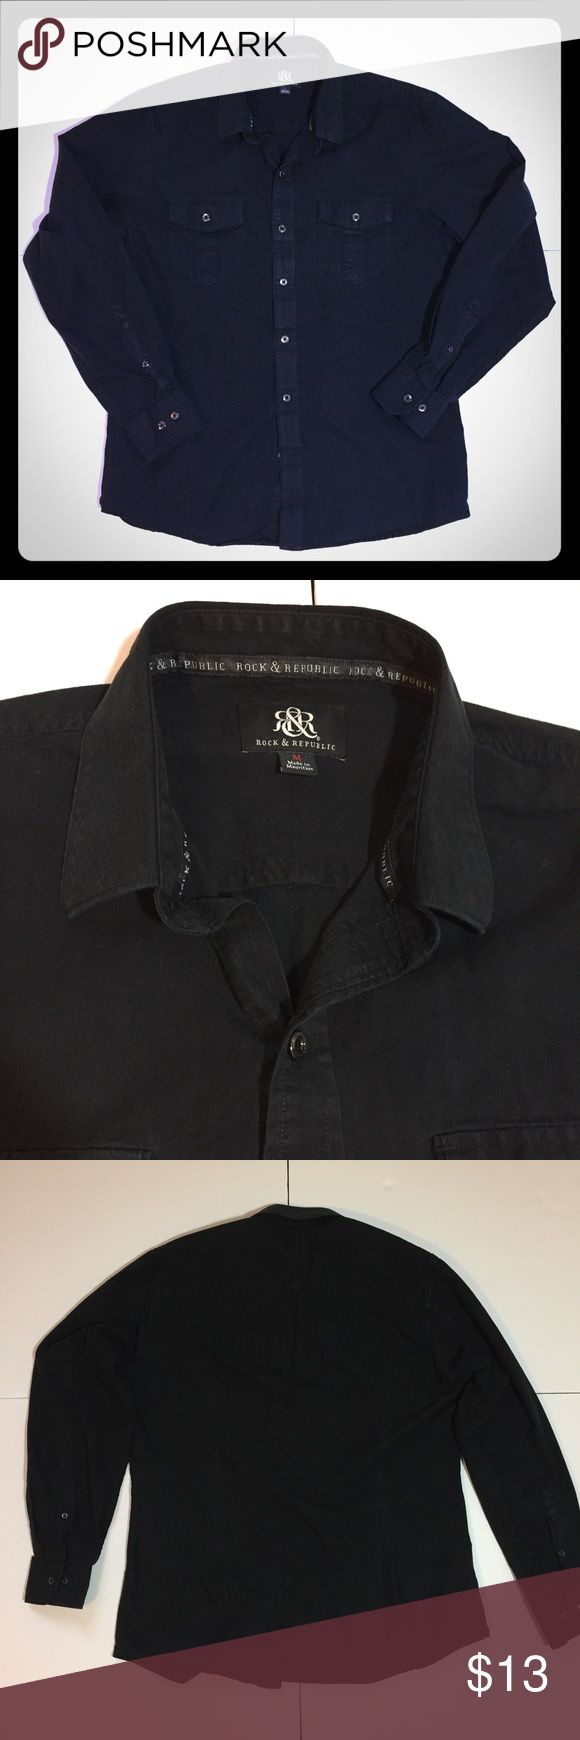 "Rock& Republic Black Button Down Shirt Rock& Republic Black Button Down Shirt. Size M measures: 18"" across shoulders, 23"" across chest, 28"" long, 24"" sleeve. 100% cotton. 311/25/040717 Rock & Republic Shirts Casual Button Down Shirts"